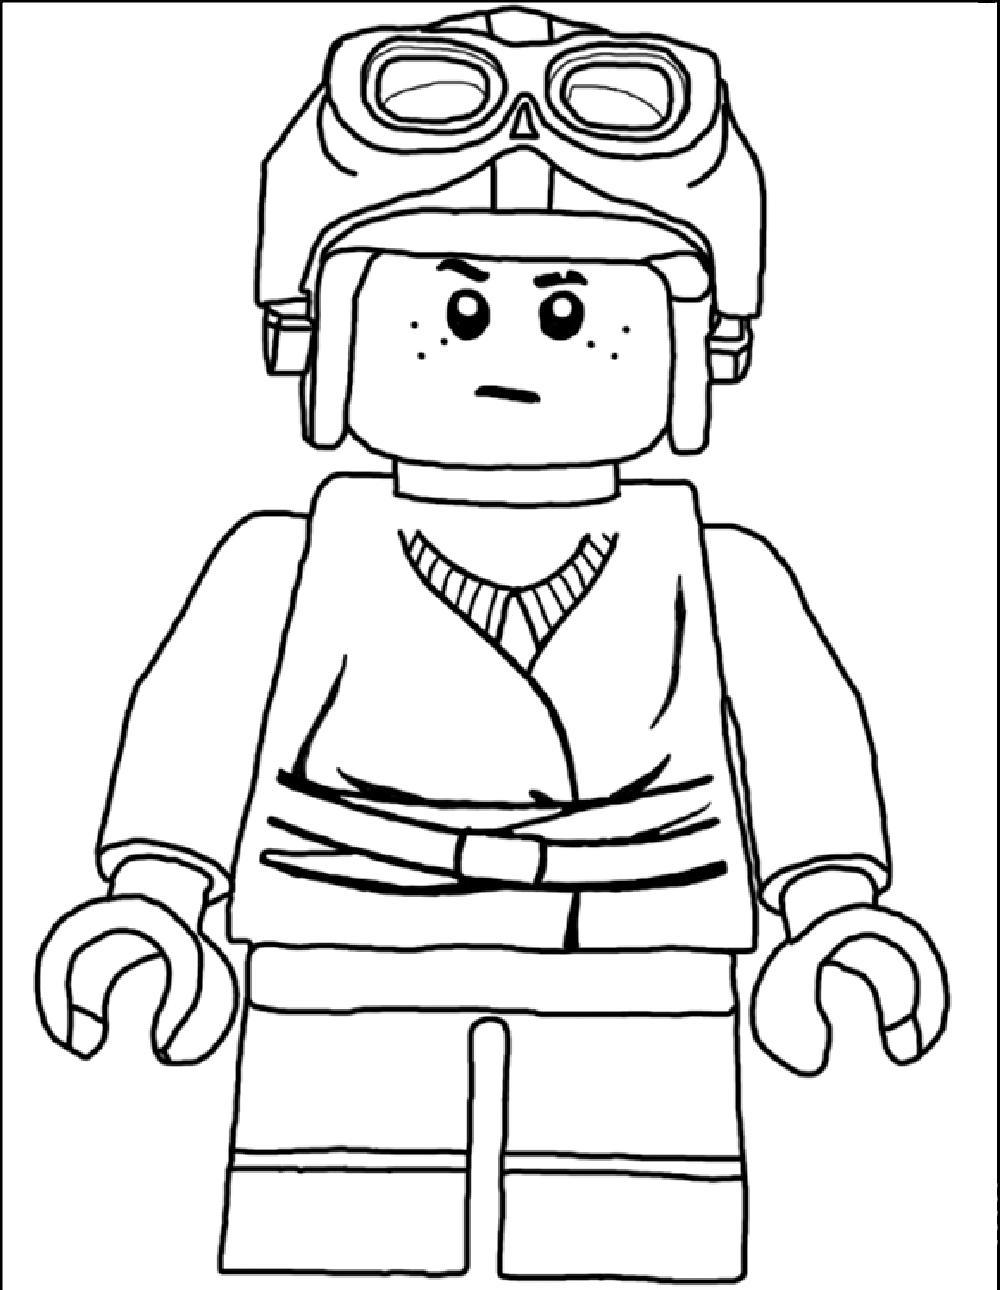 lego star wars pictures to color star wars lego coloring page bestappsforkidscom lego color pictures wars star to